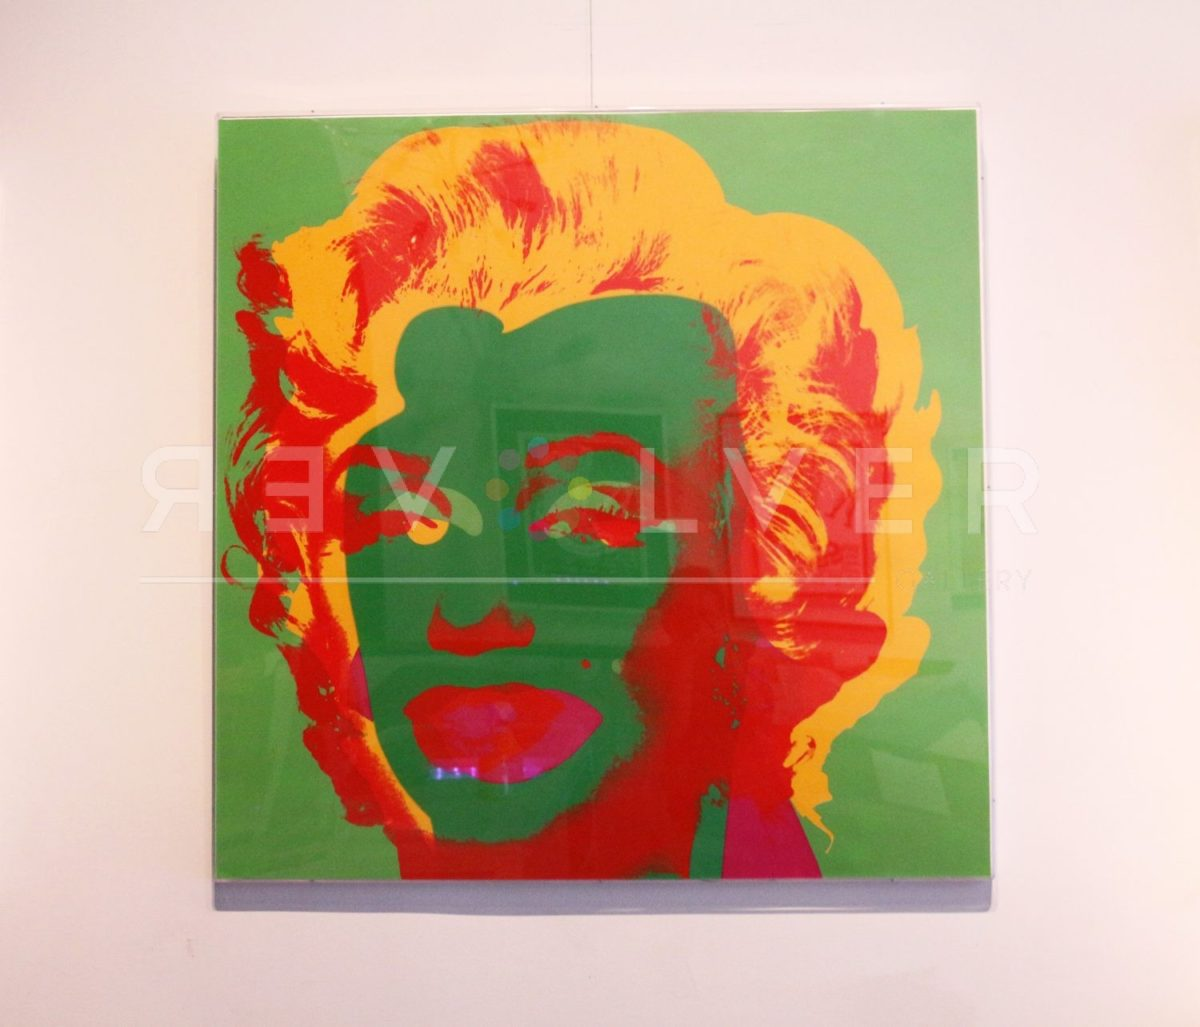 Andy Warhol Marilyn Monroe 25 framed and hanging on the gallery wall.